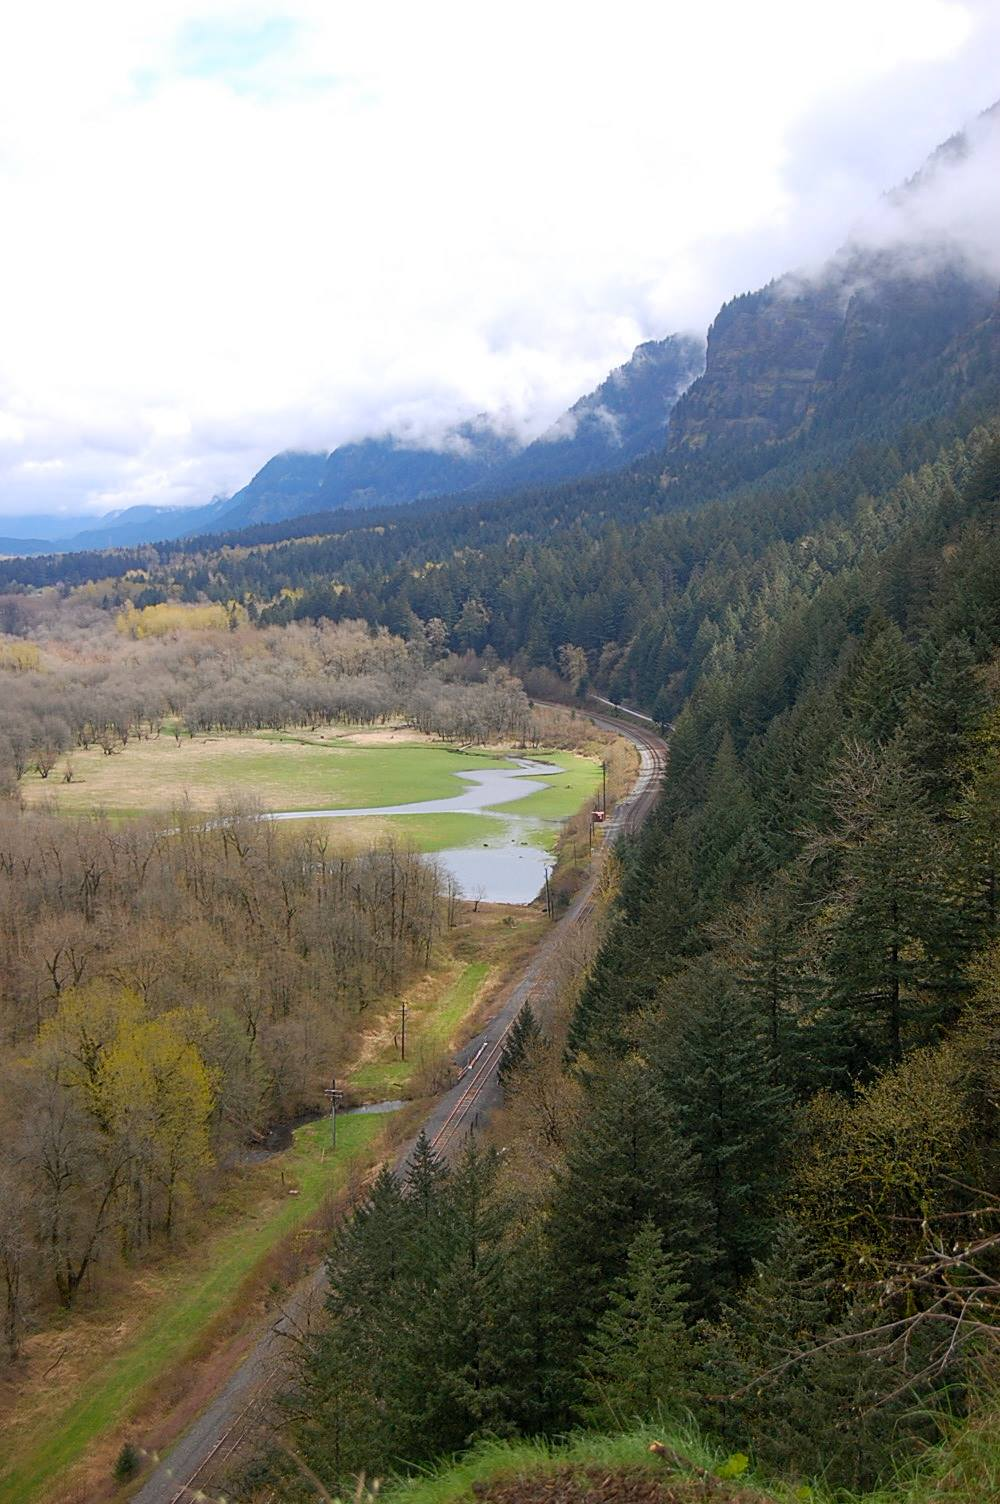 VIEW FROM THE TRAILS- COLUMBIA RIVER GORGE